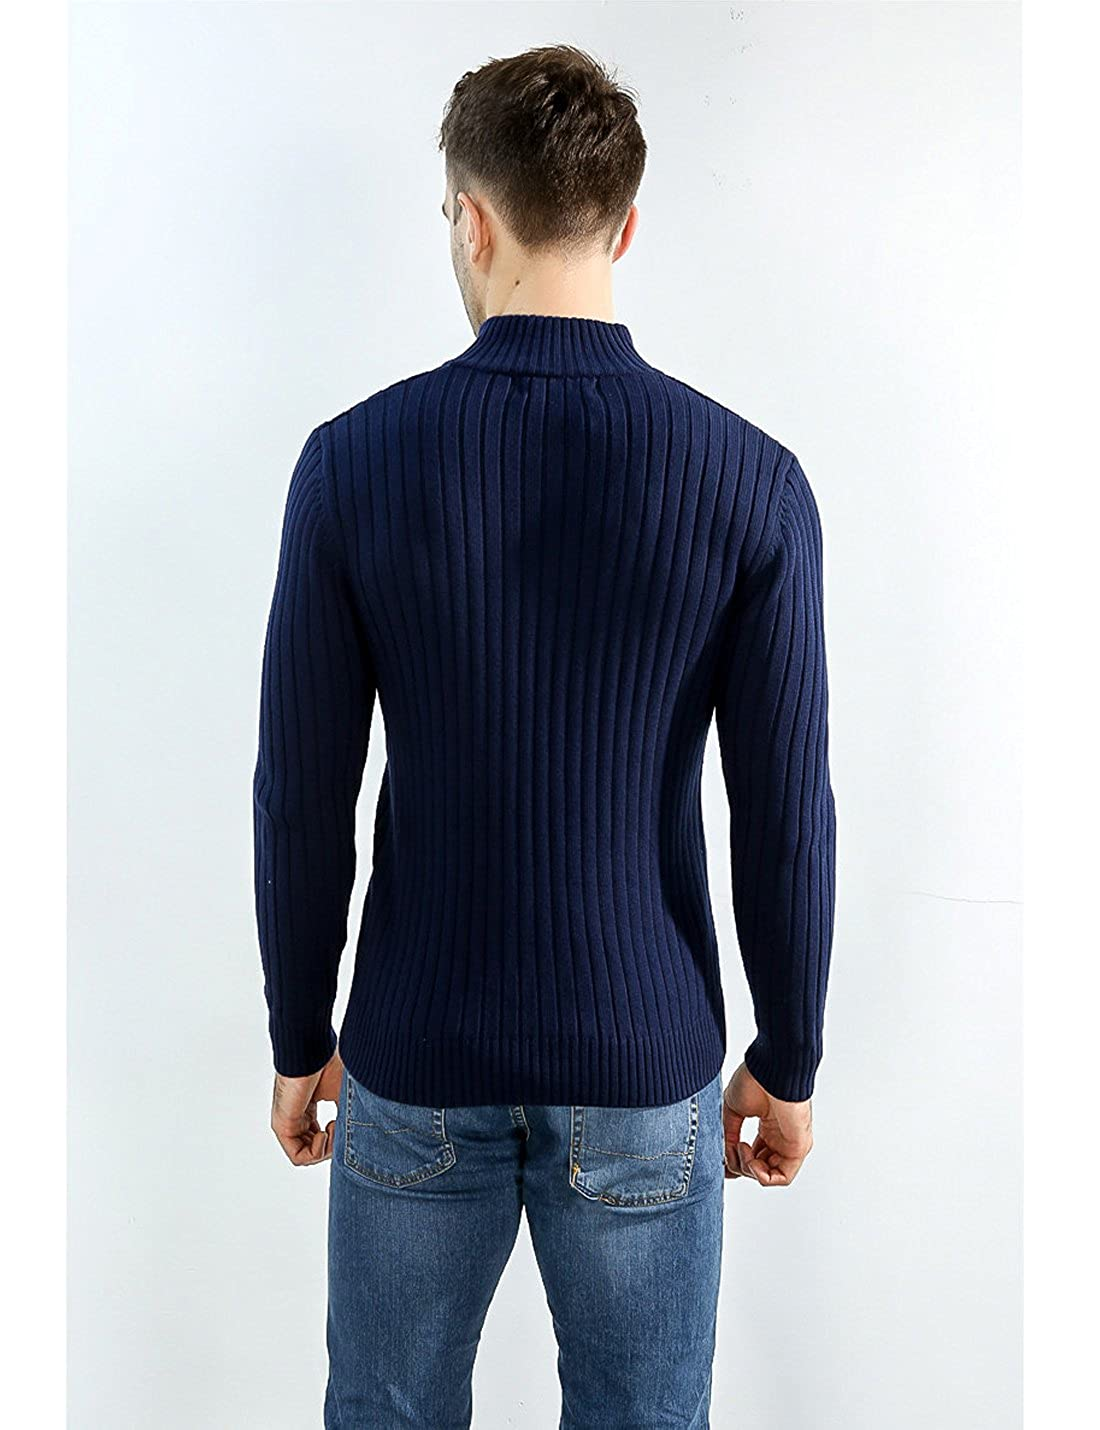 Jenkoon Men Slim Fit Zip-Up Sweater Casual Knitted Cardigans Jacket Top